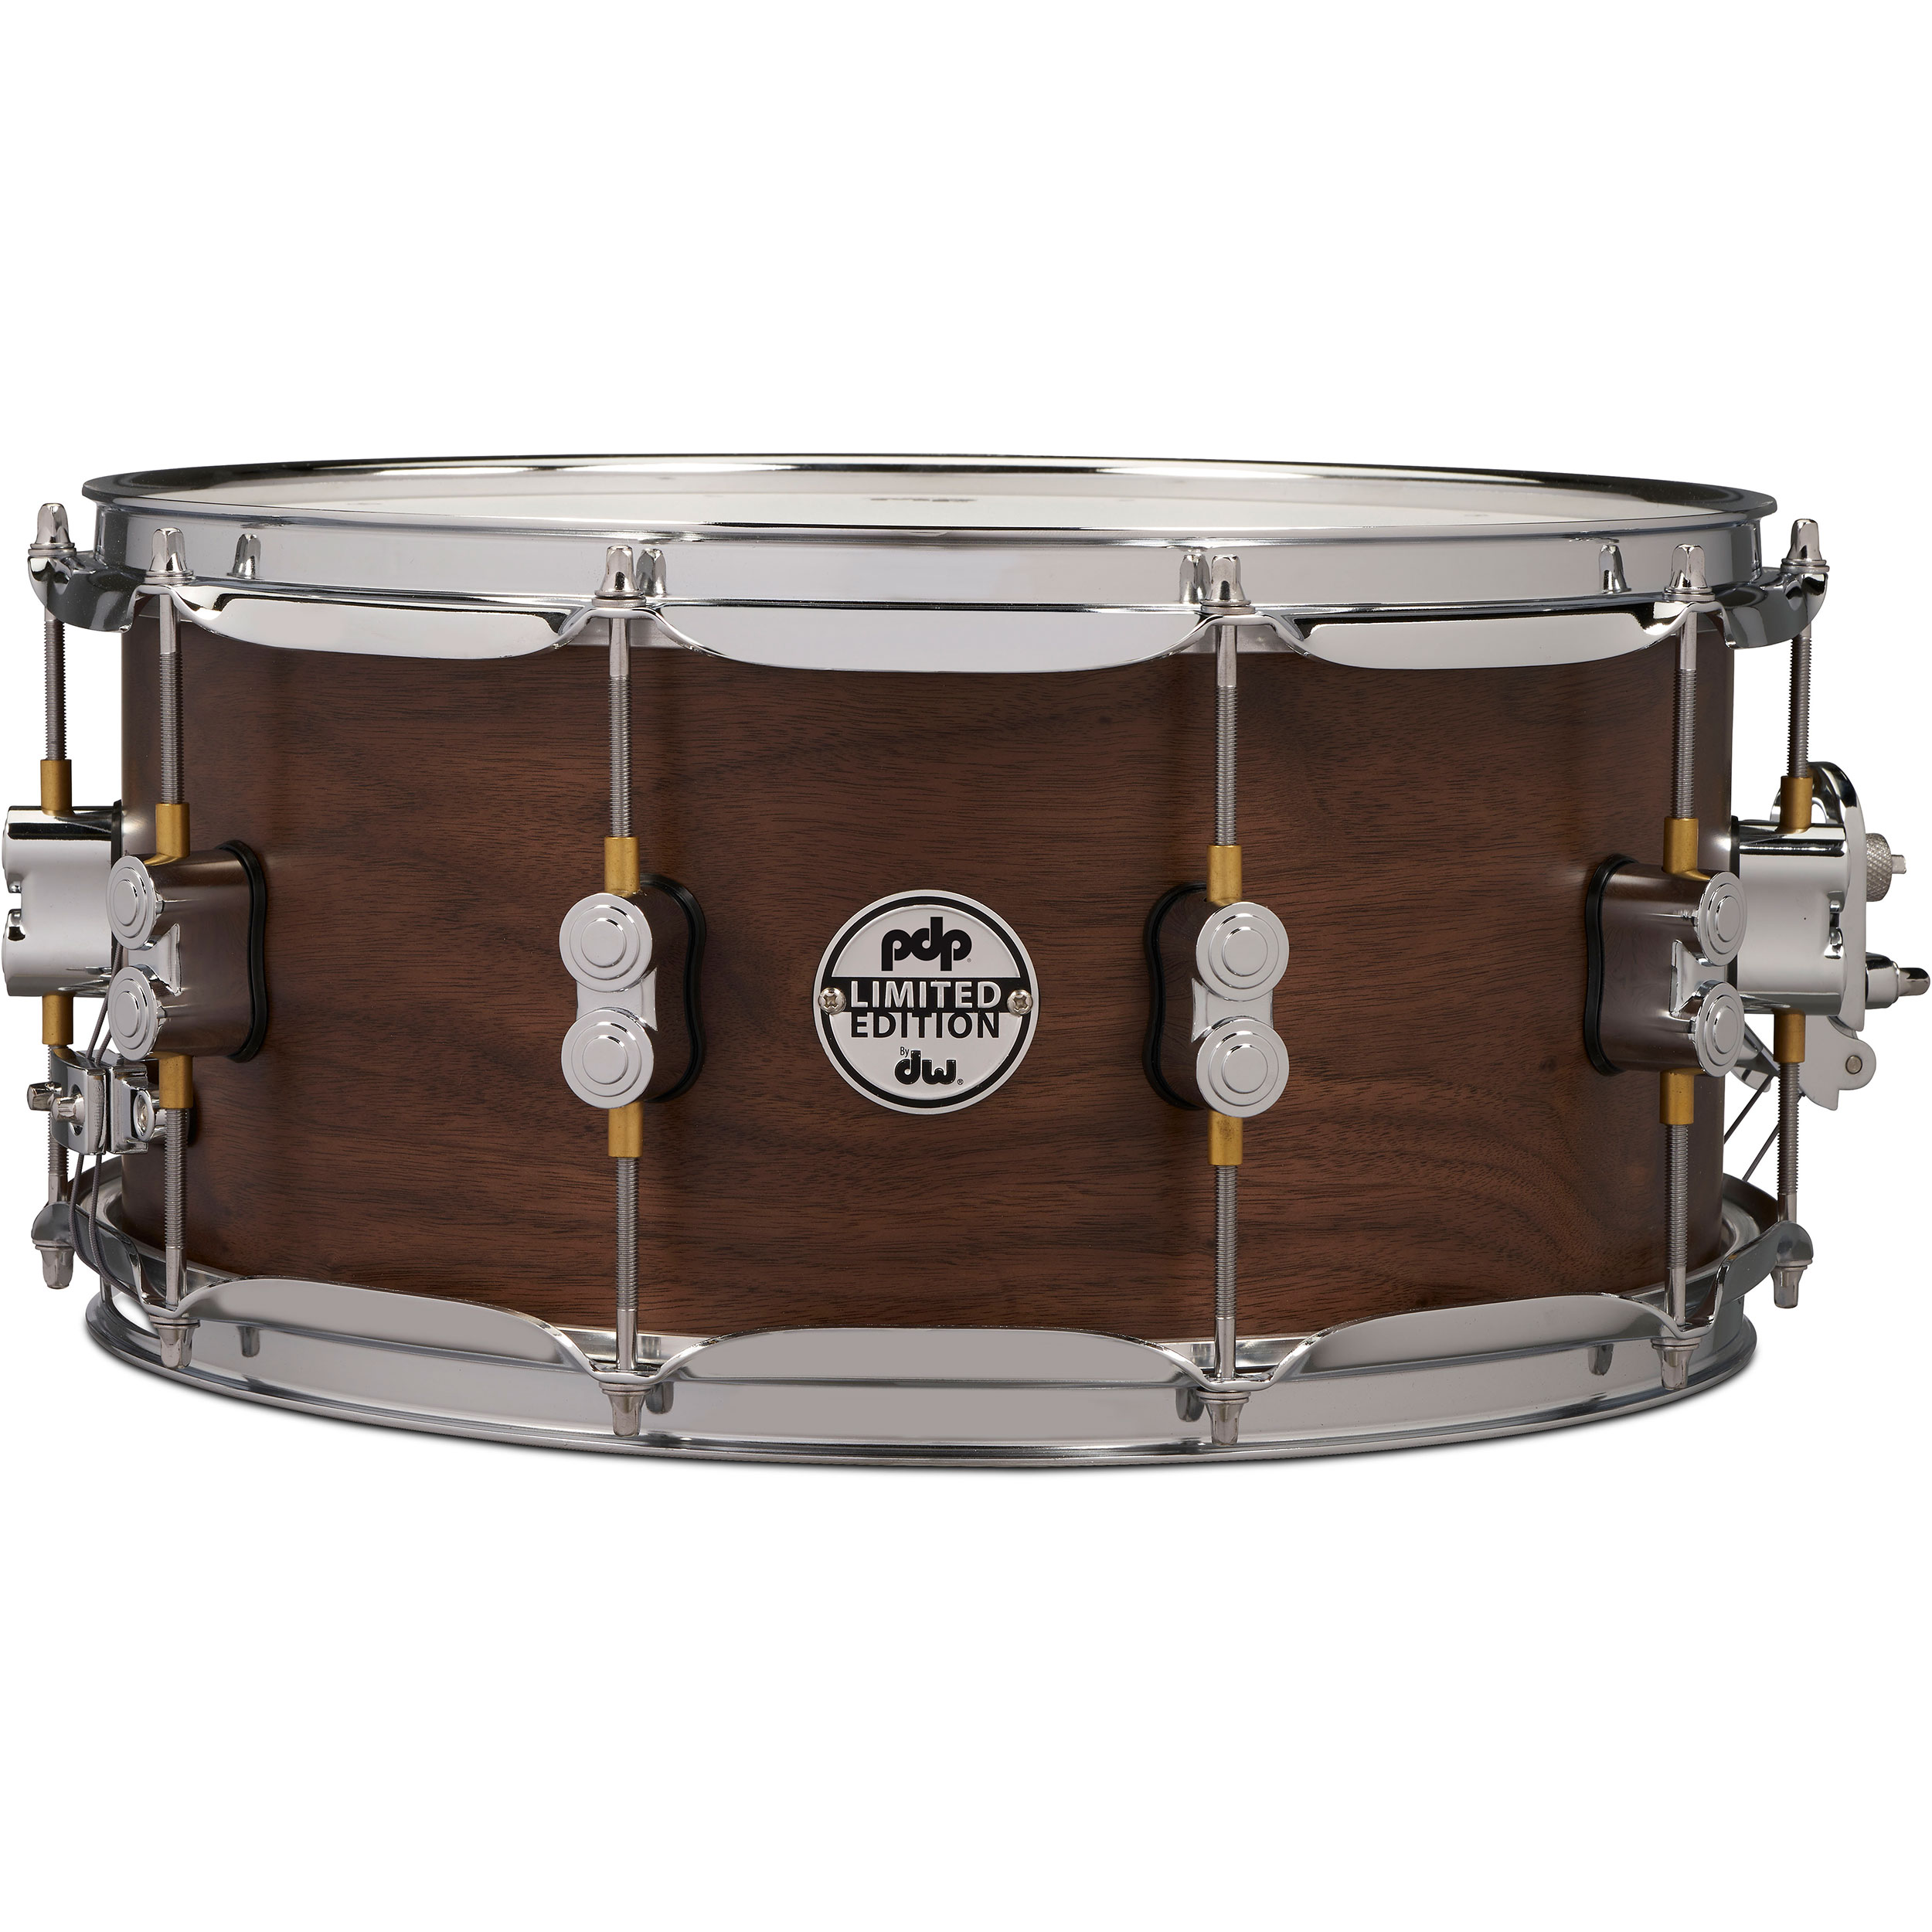 "PDP 6.5"" x 14"" Limited Edition Series 20-Ply Maple/Walnut Snare Drum in Natural Satin"